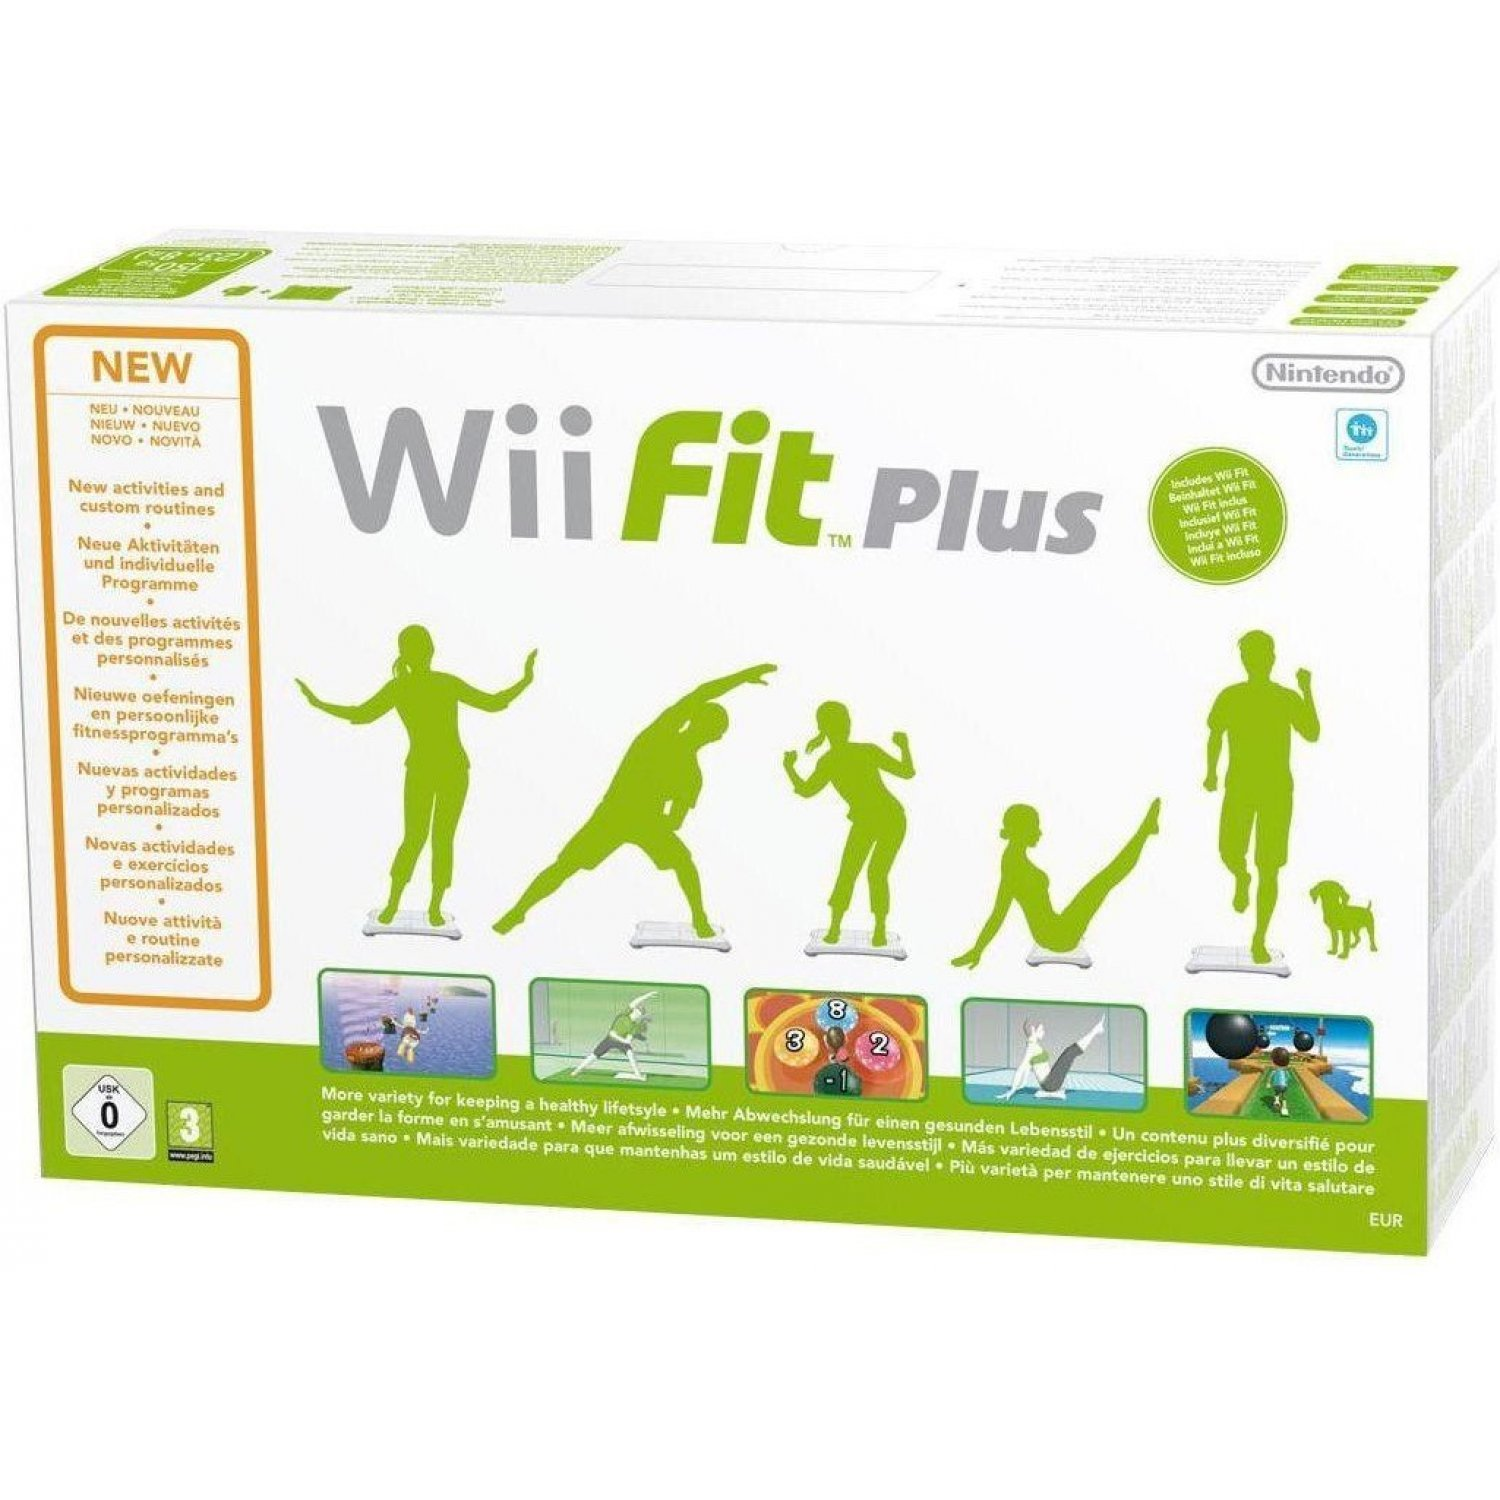 wii fit plus instructions in english